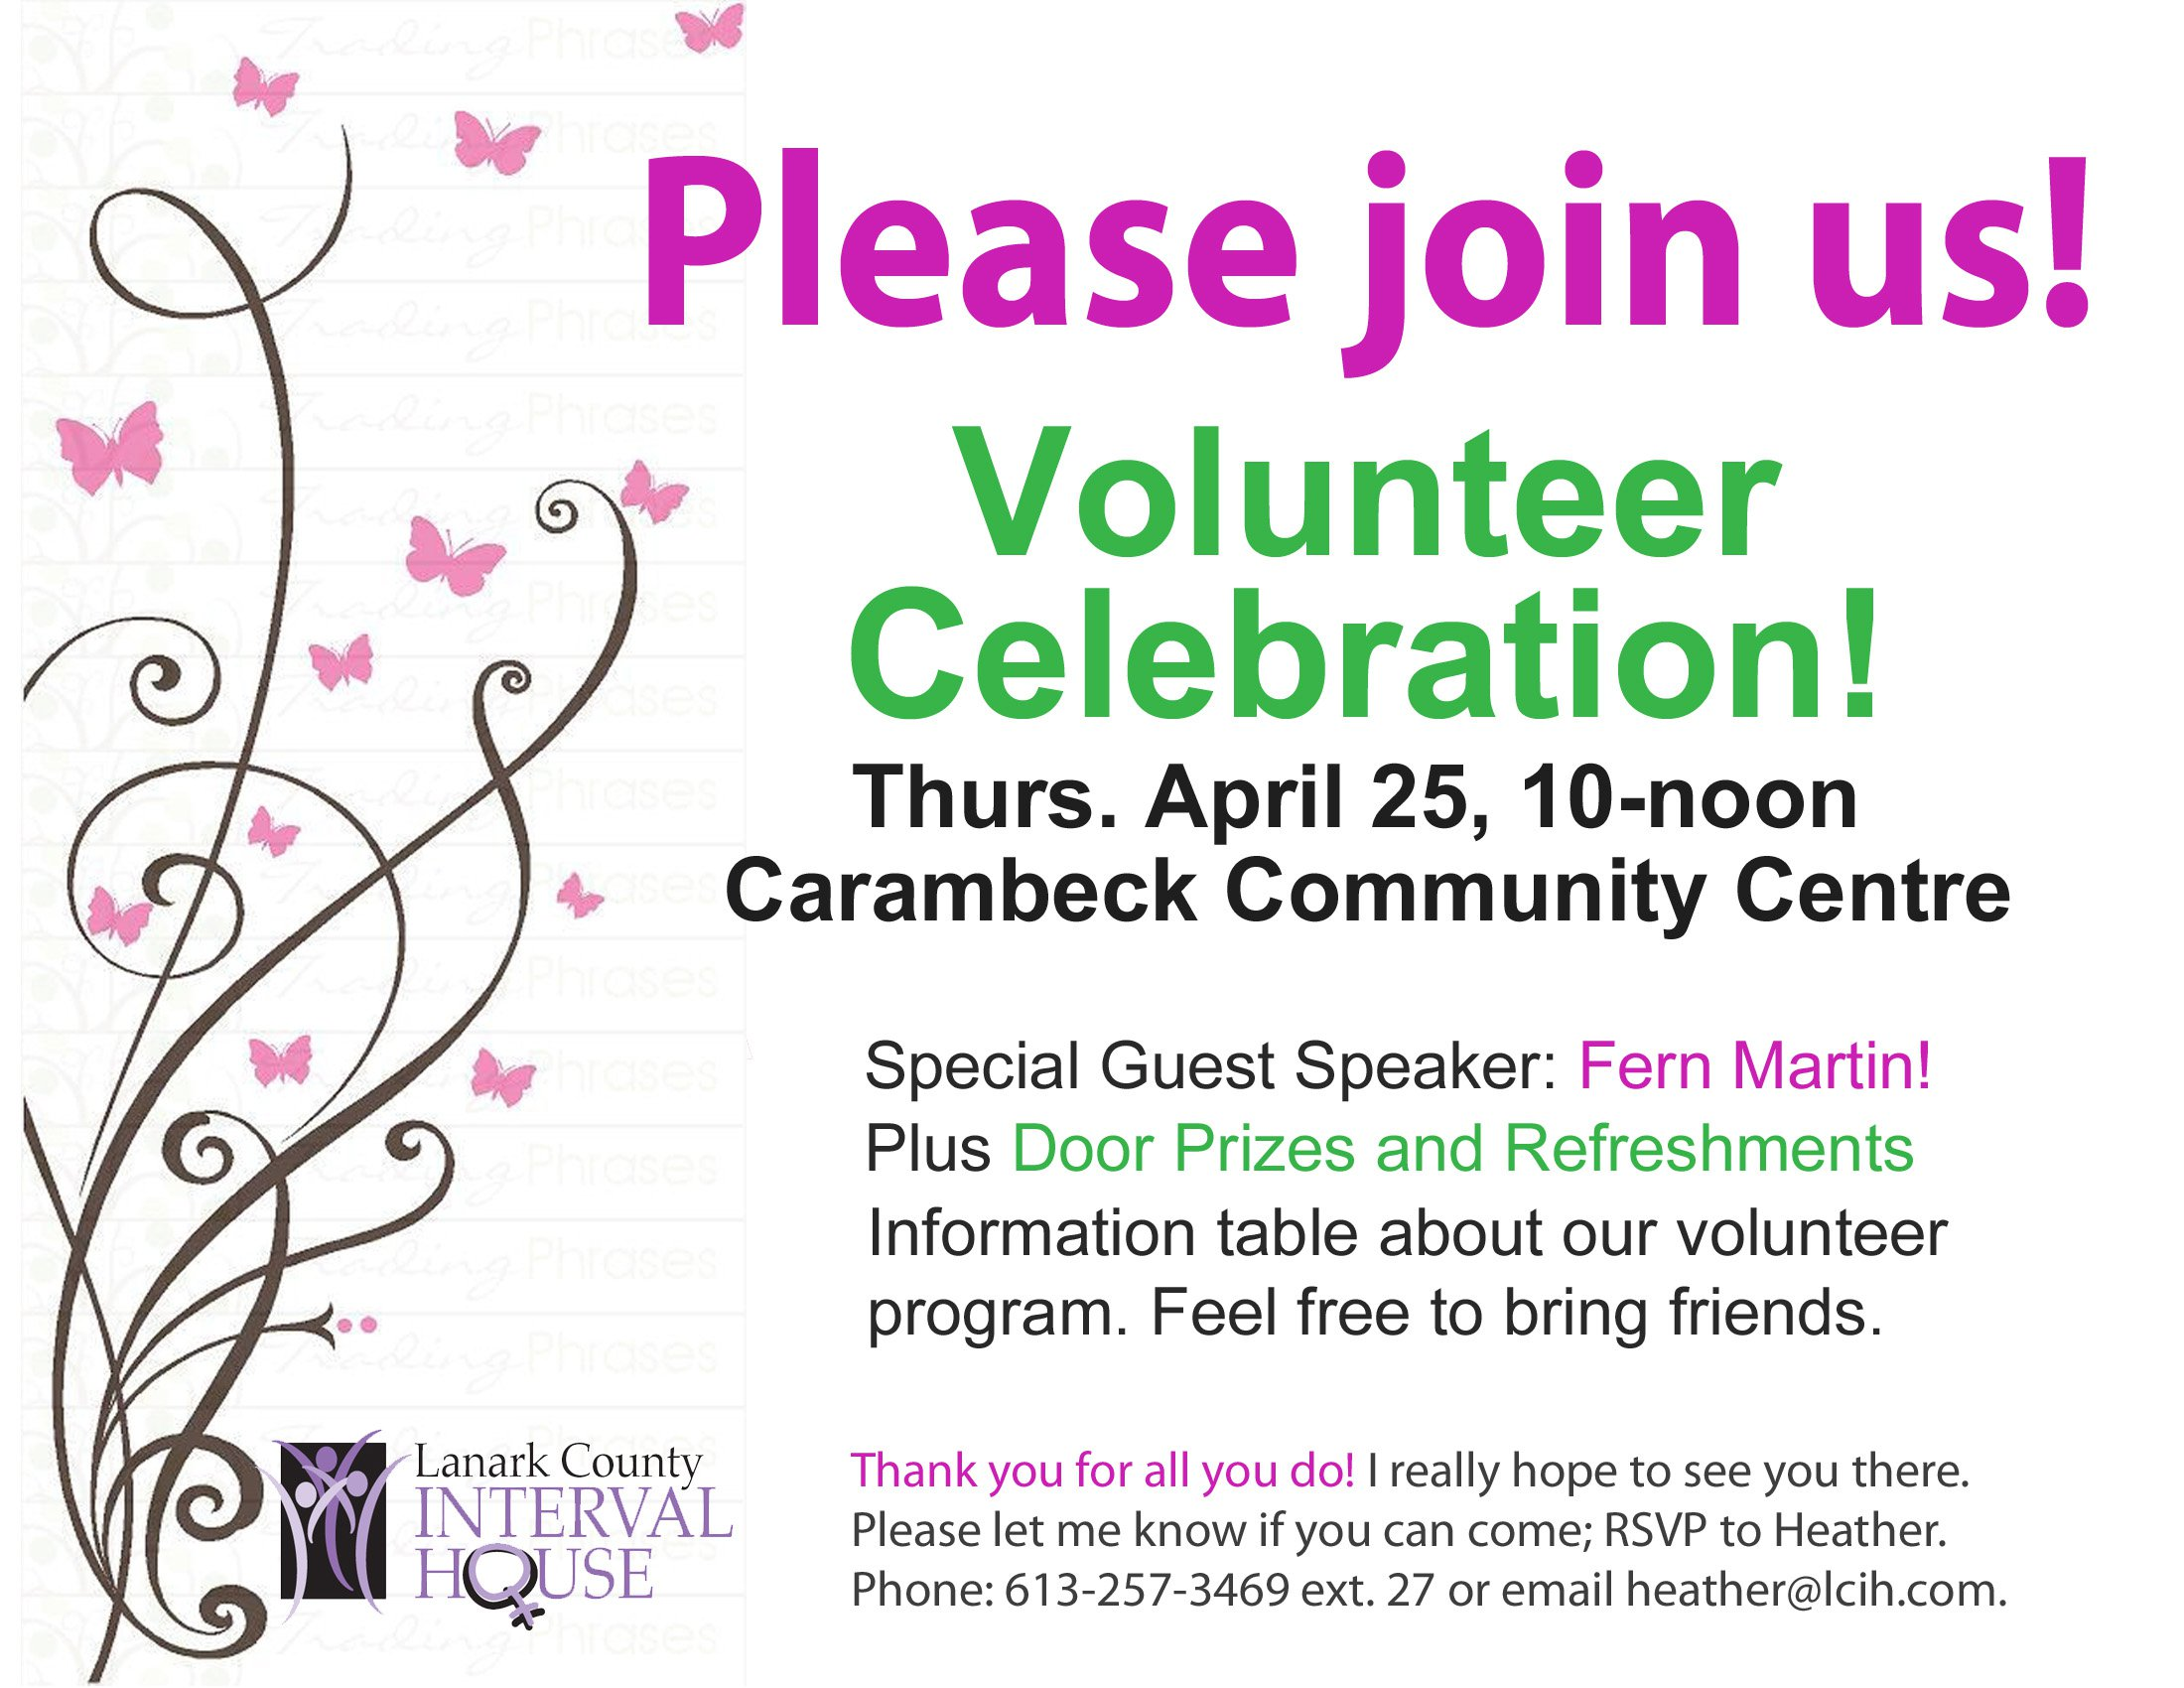 Volunteer Appreciation Invitation Sample